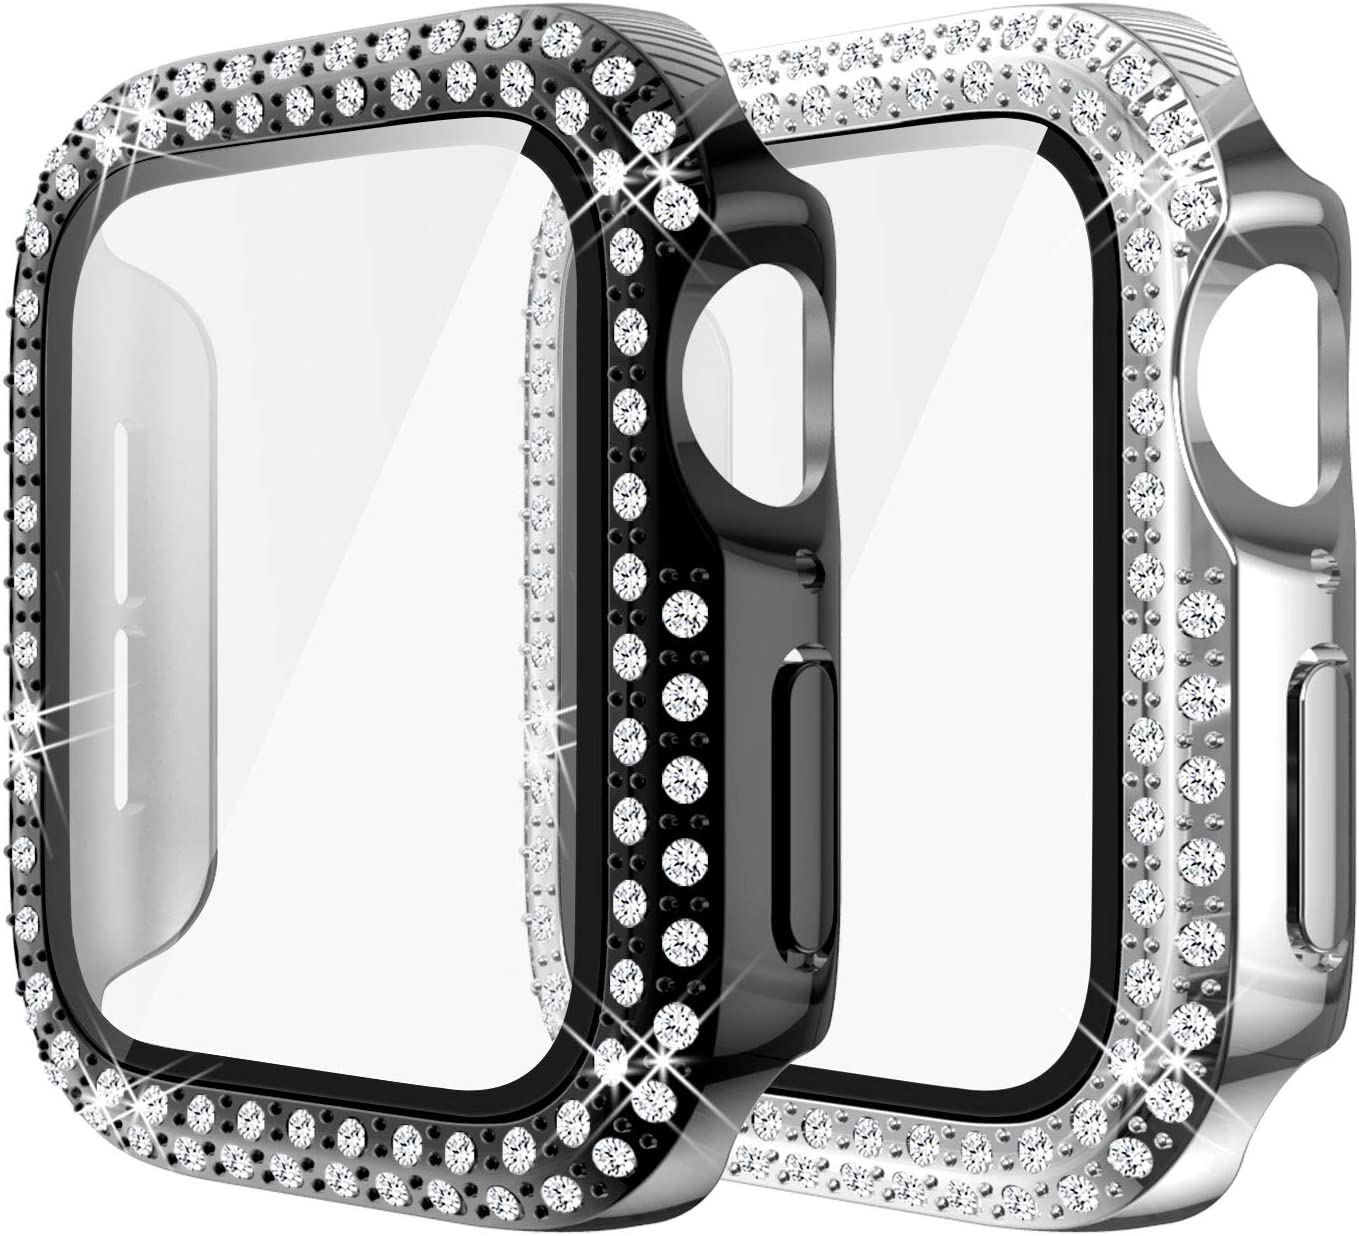 Yolovie (2-Pack) Compatible for Apple Watch Case with Screen Protector 44mm Series 6/5/4/SE, Bling Cover Diamonds Rhinestone Bumper Protective Frame for iWatch Girl Women (Black/Silver)